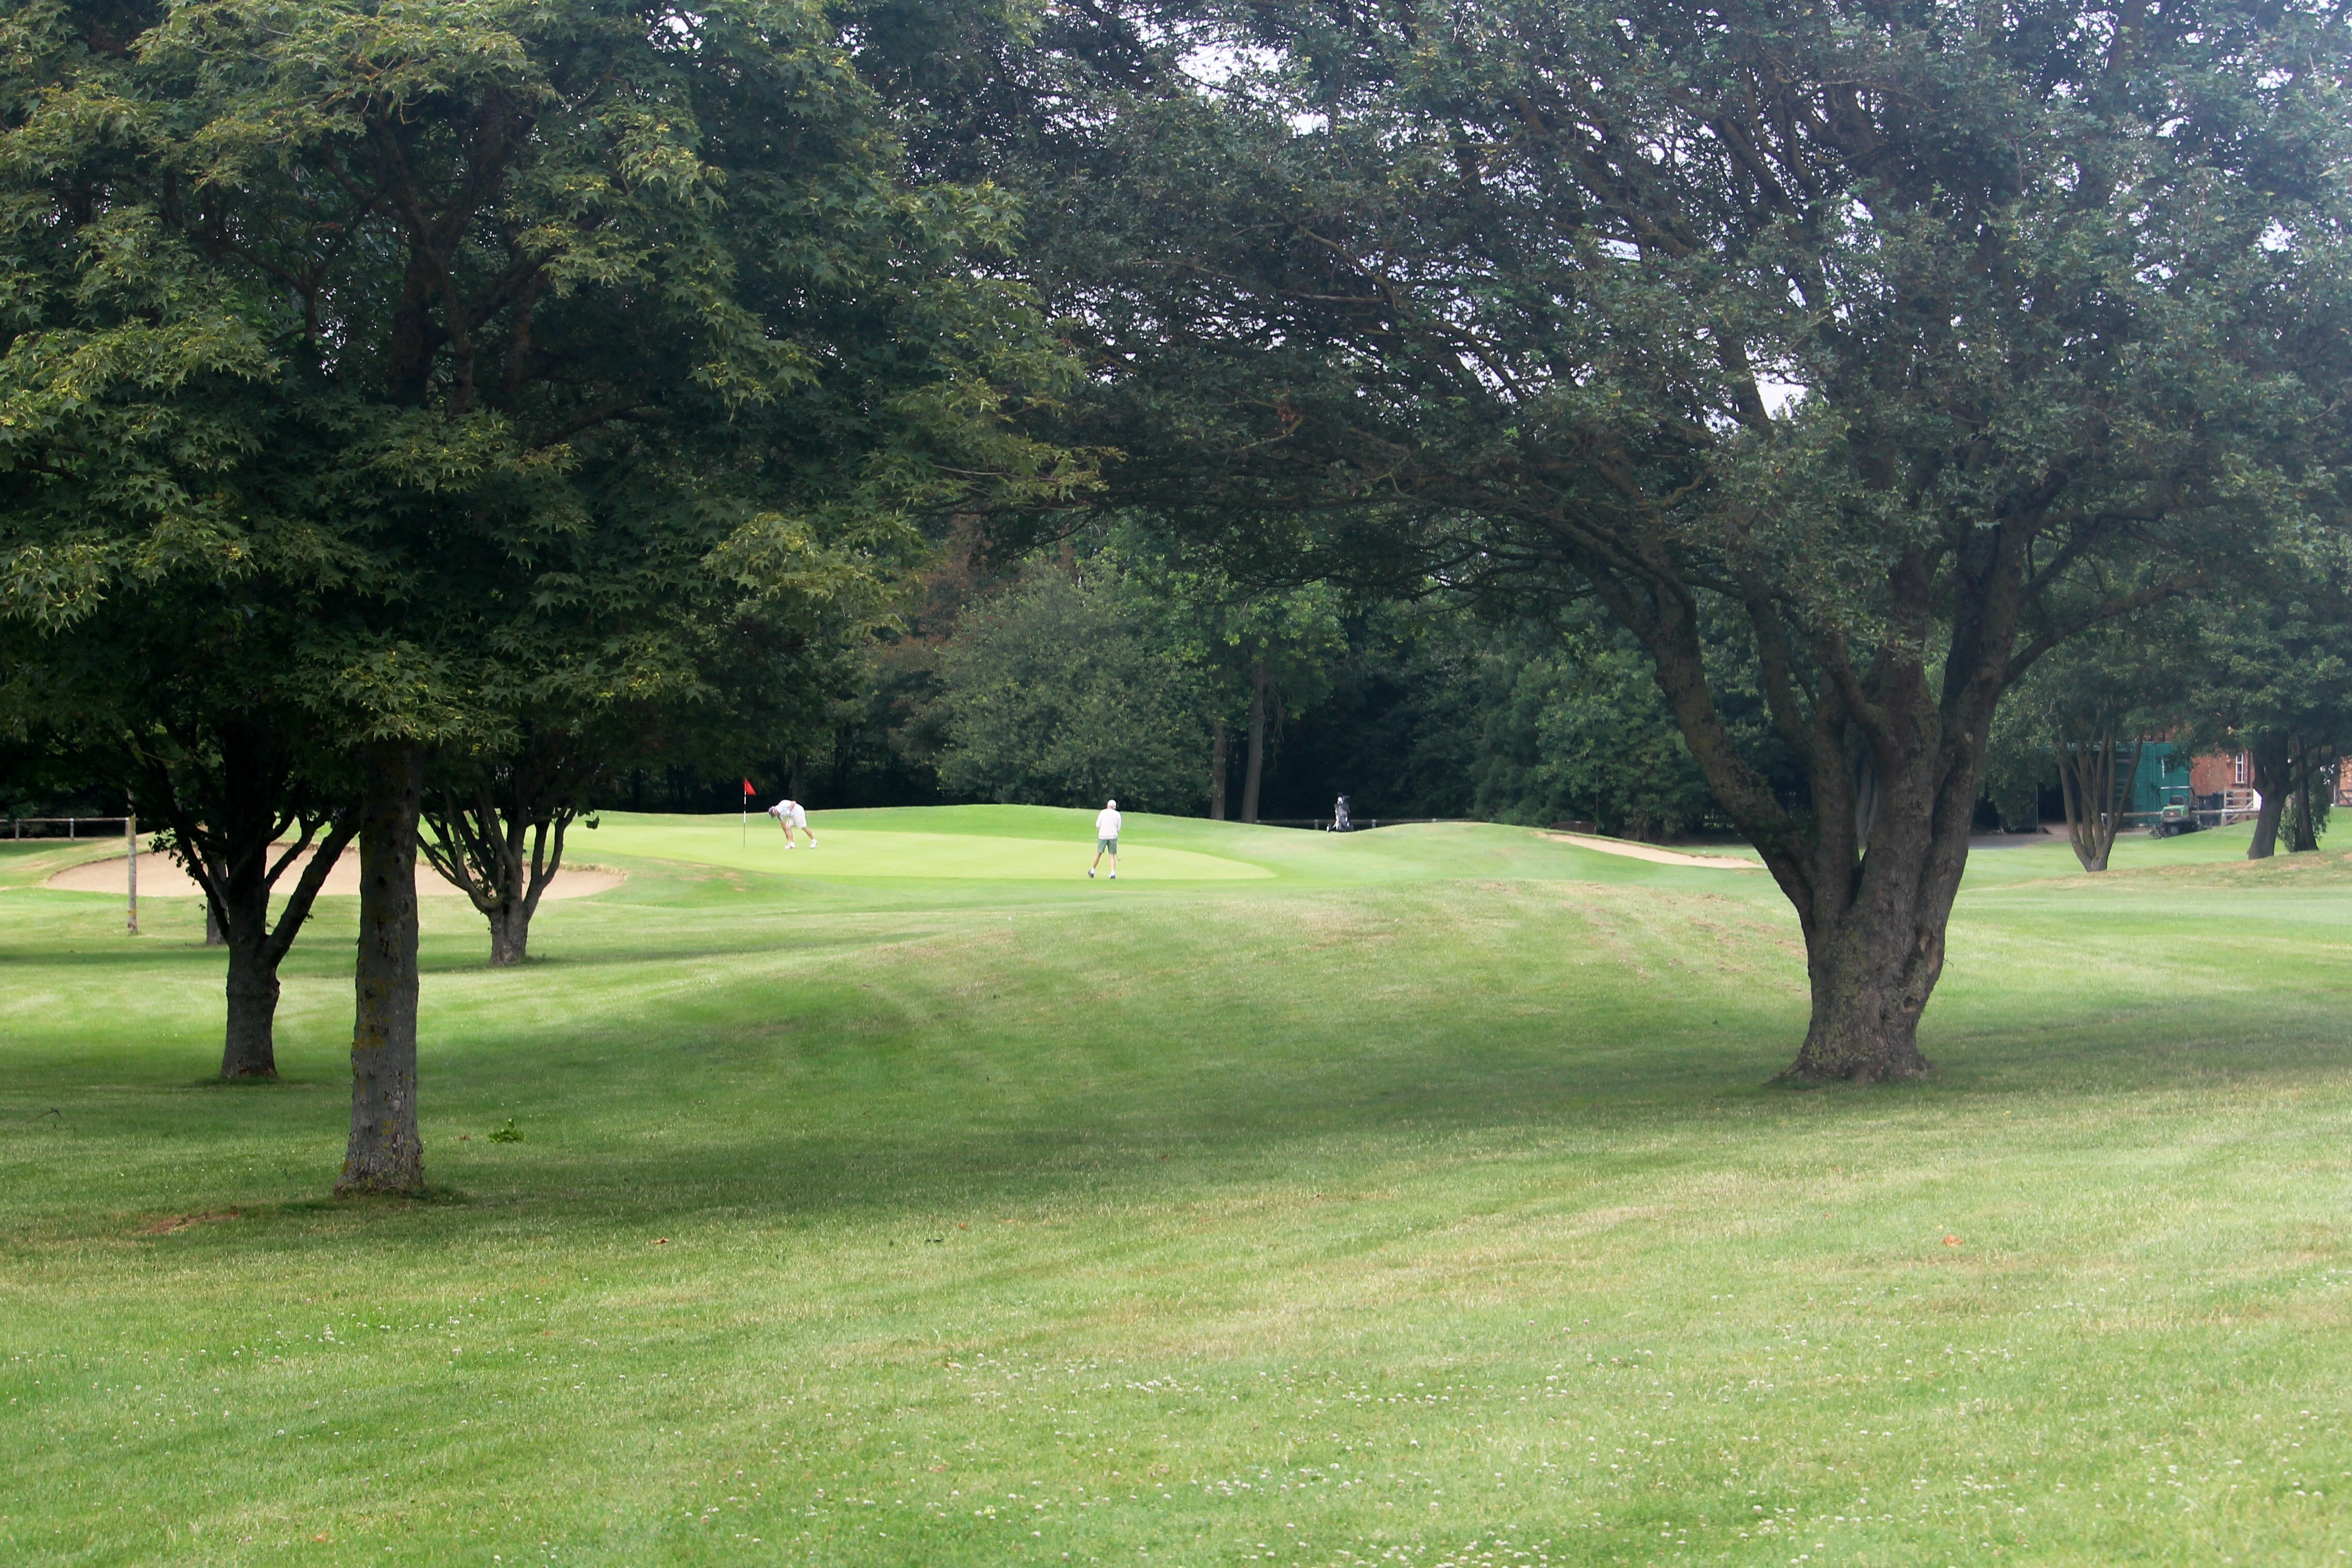 18th green from fairway